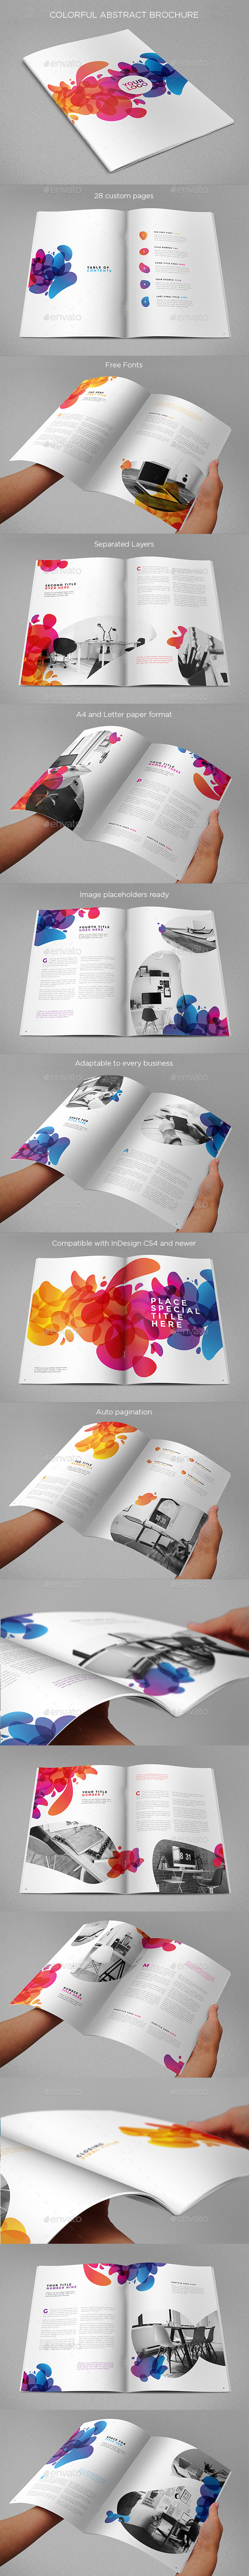 Colorful Abstract Brochure - Brochures Print Templates